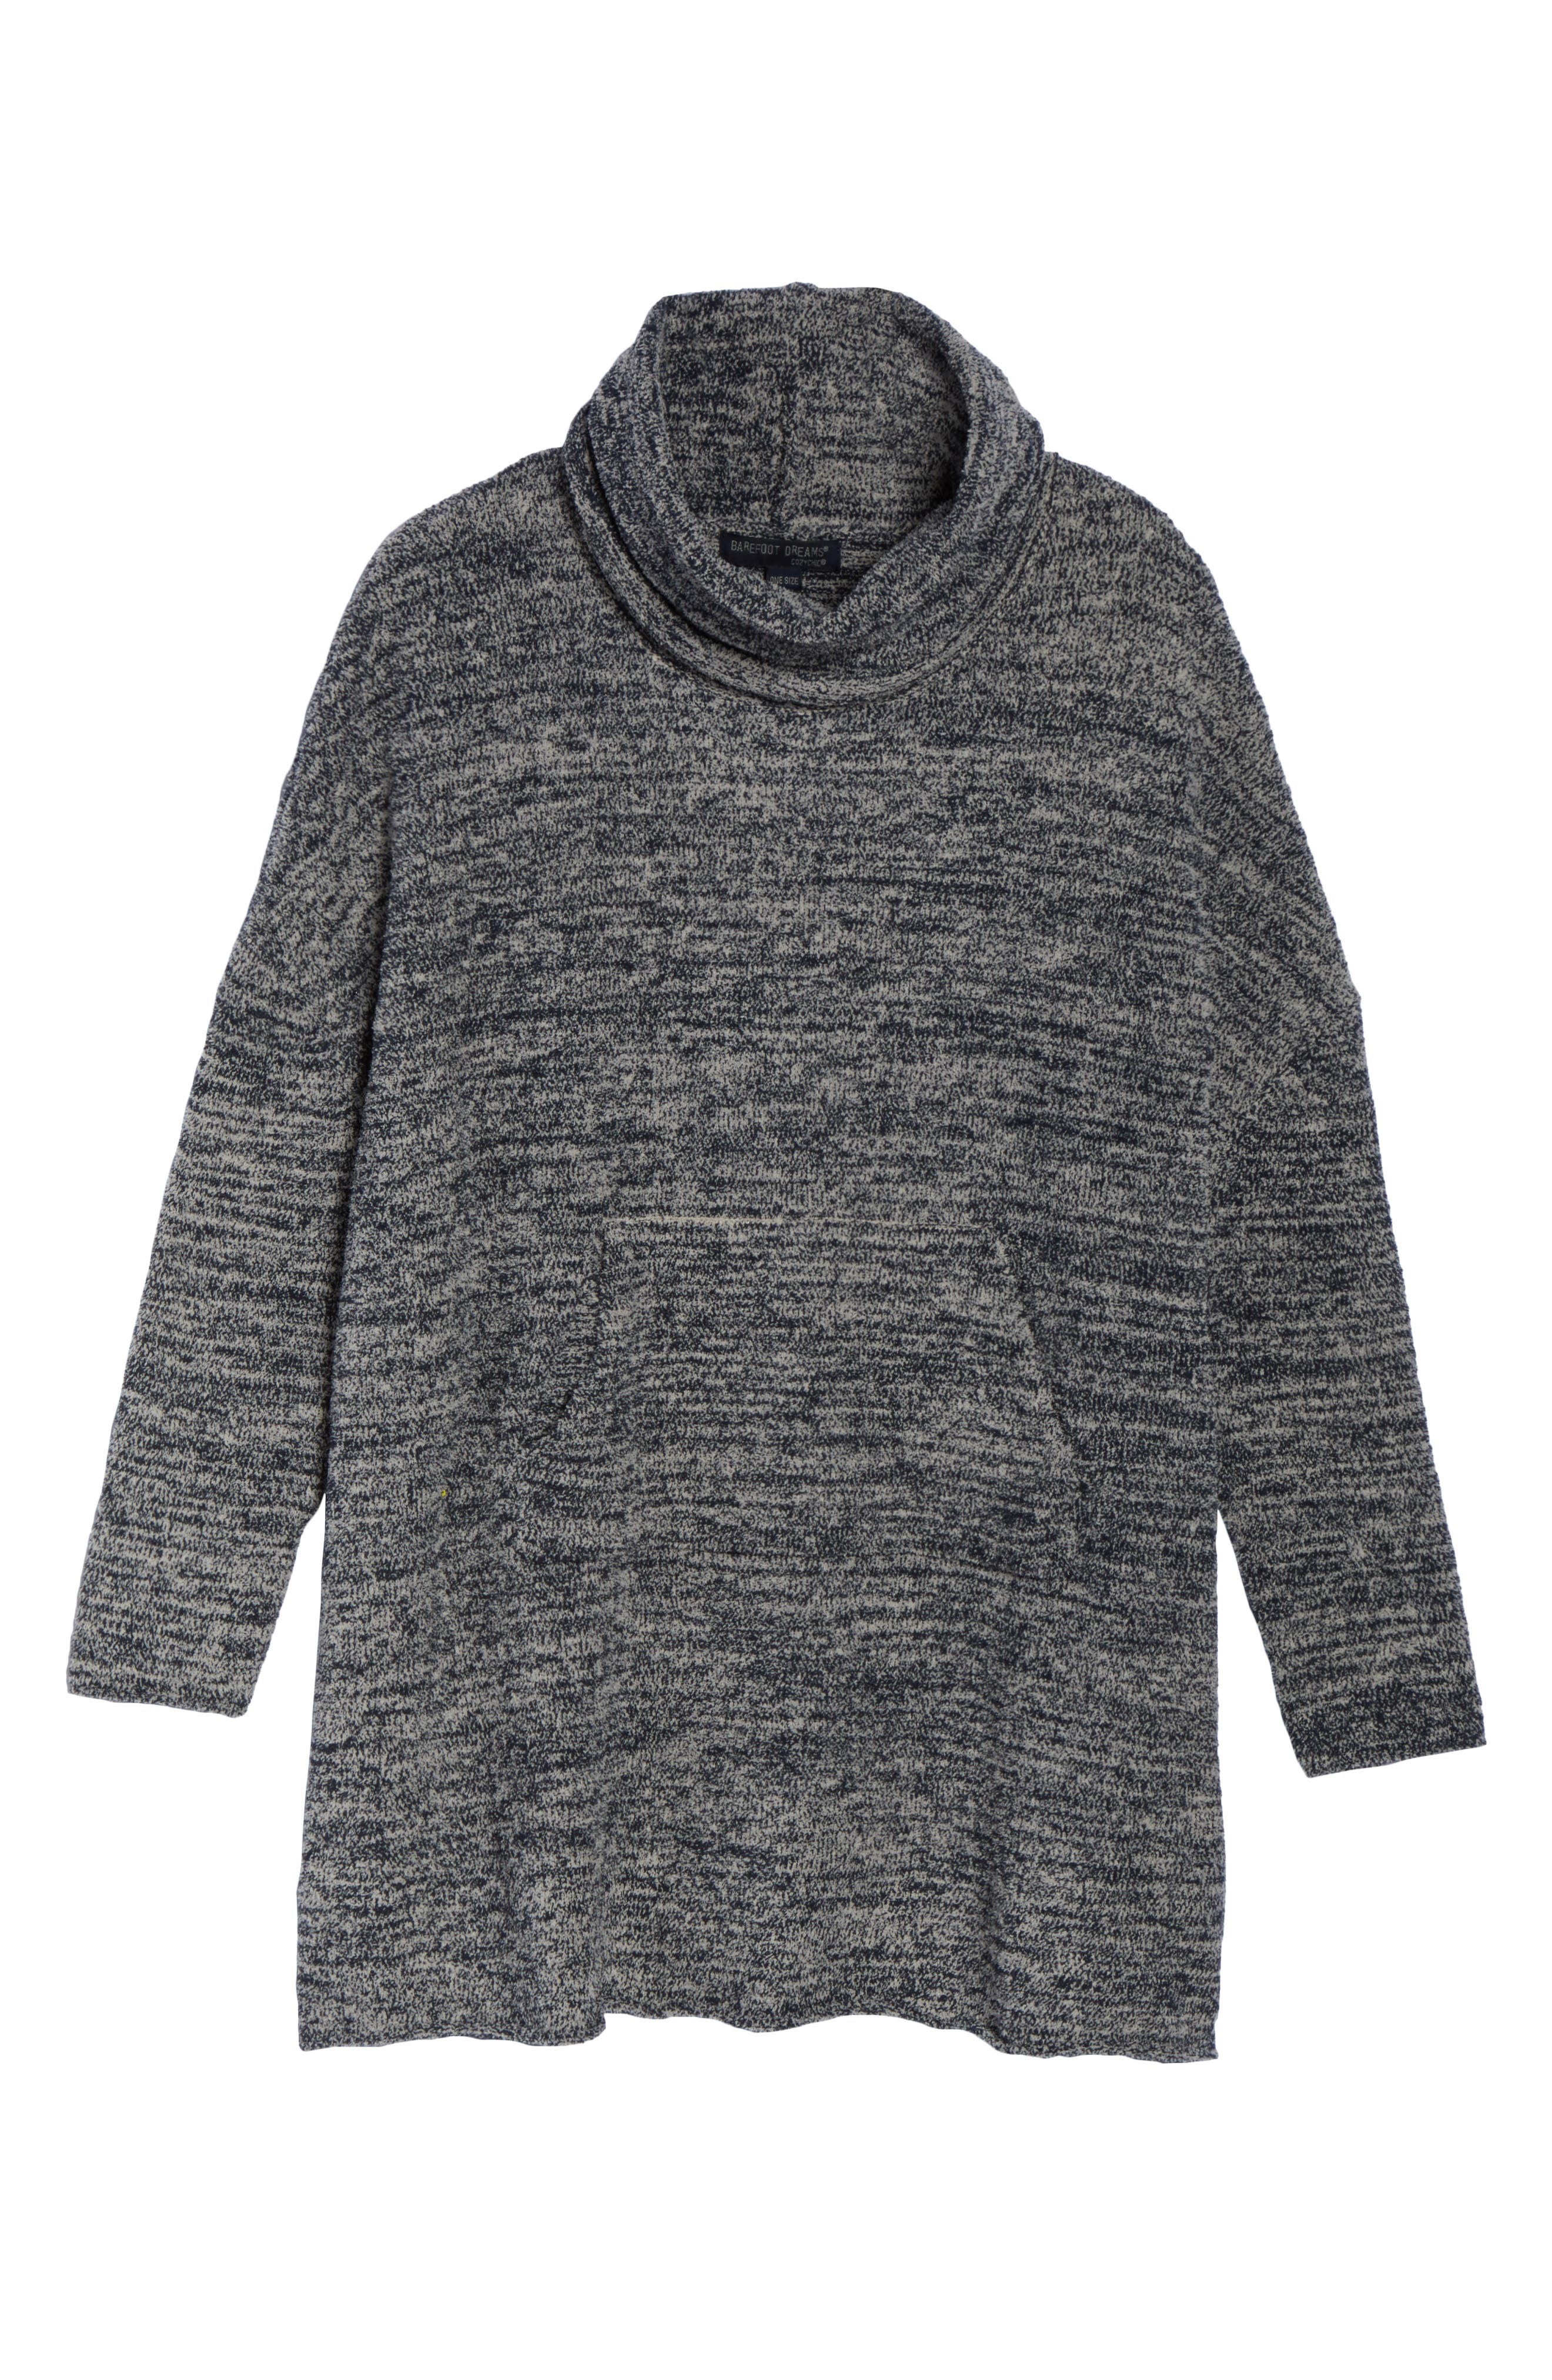 Cozychic<sup>®</sup> Lounge Pullover,                             Alternate thumbnail 4, color,                             Indigo/ Stone Heathered